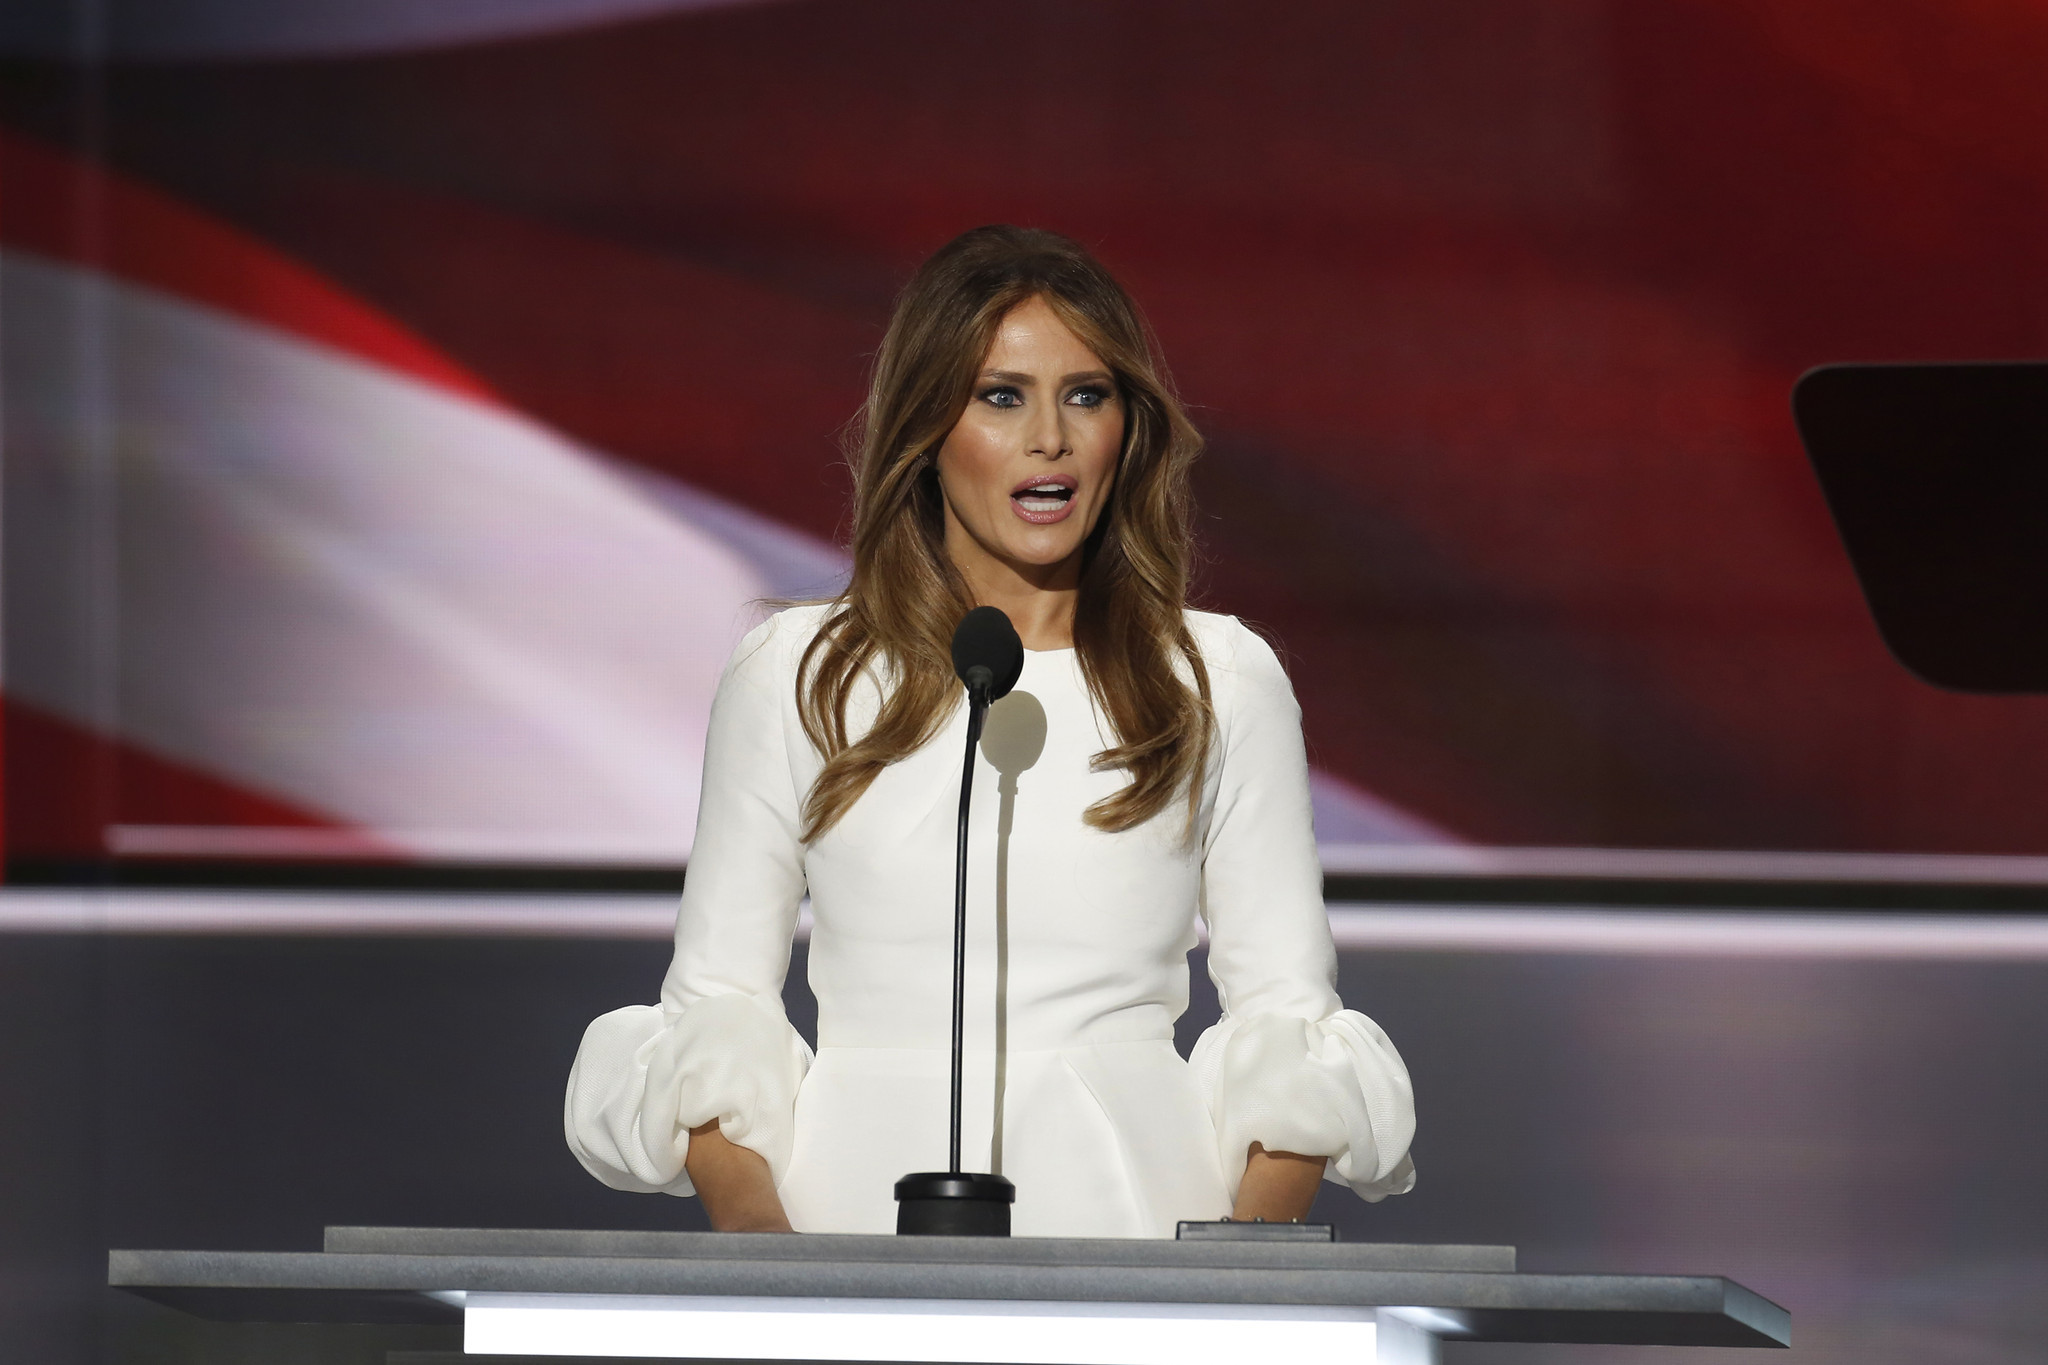 Melania Trump speaks during the Republican National Convention on July 18, the first night of the convention in Cleveland.